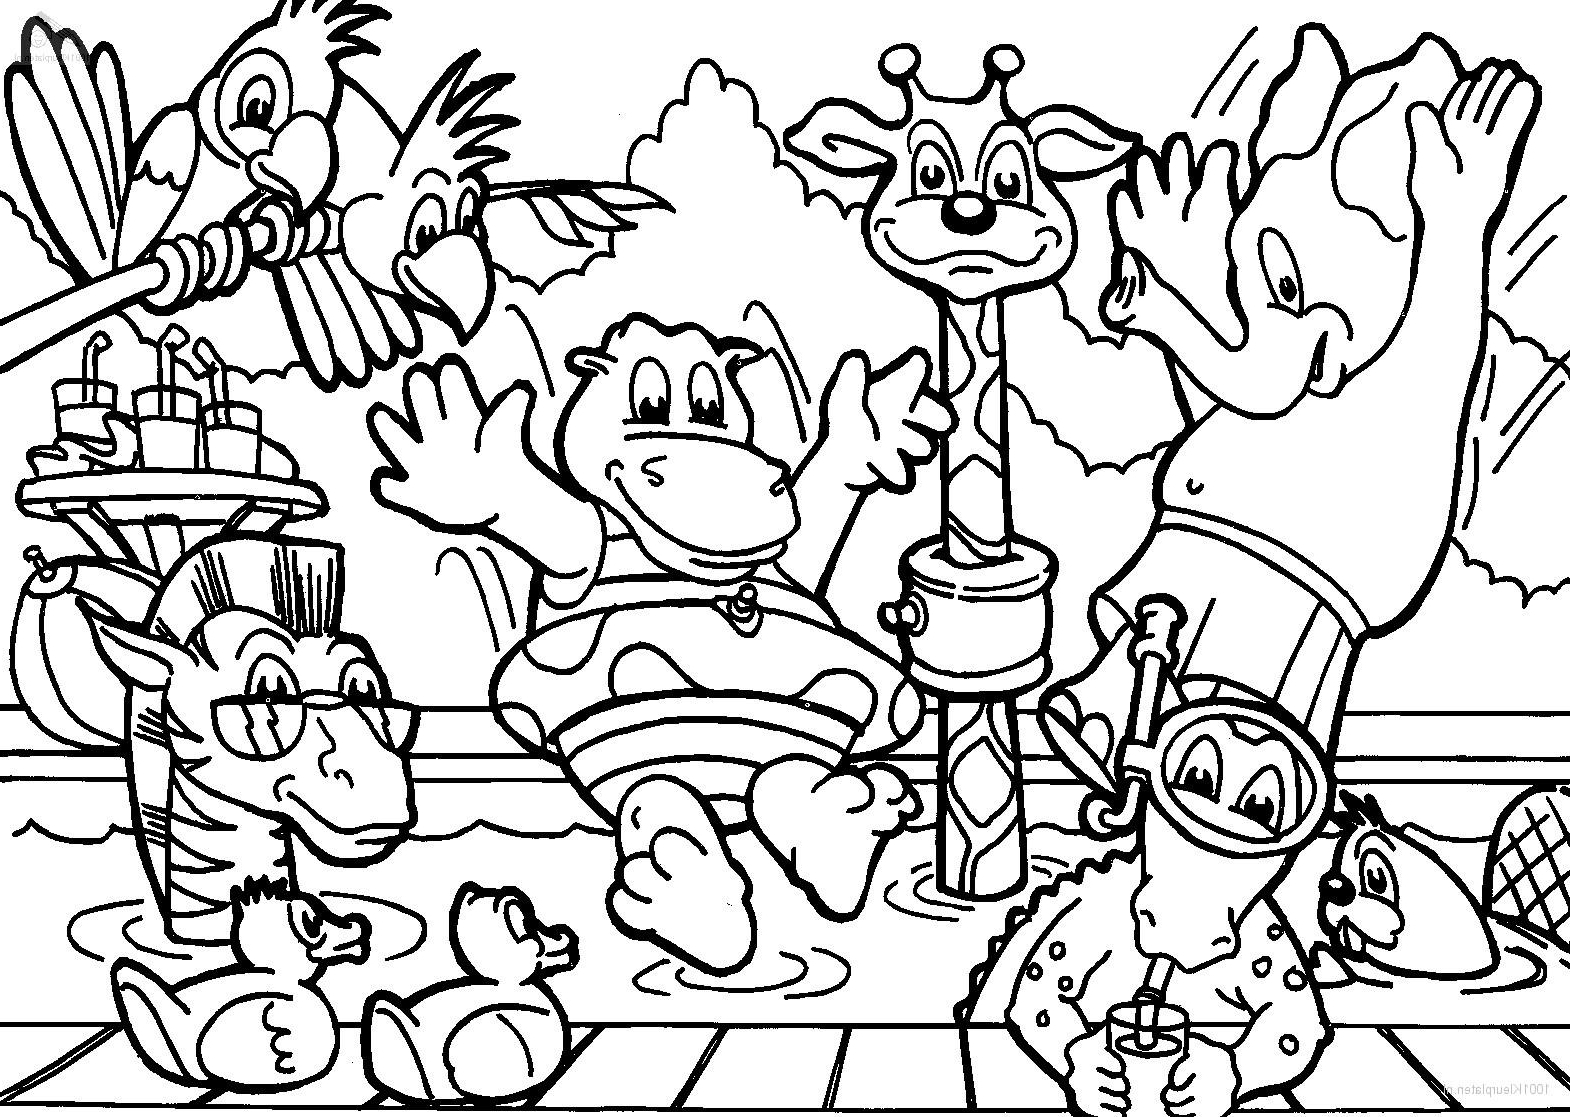 April Coloring Pages - Tag Zoo Animal Coloring Pages Printable Coloring Page Kids